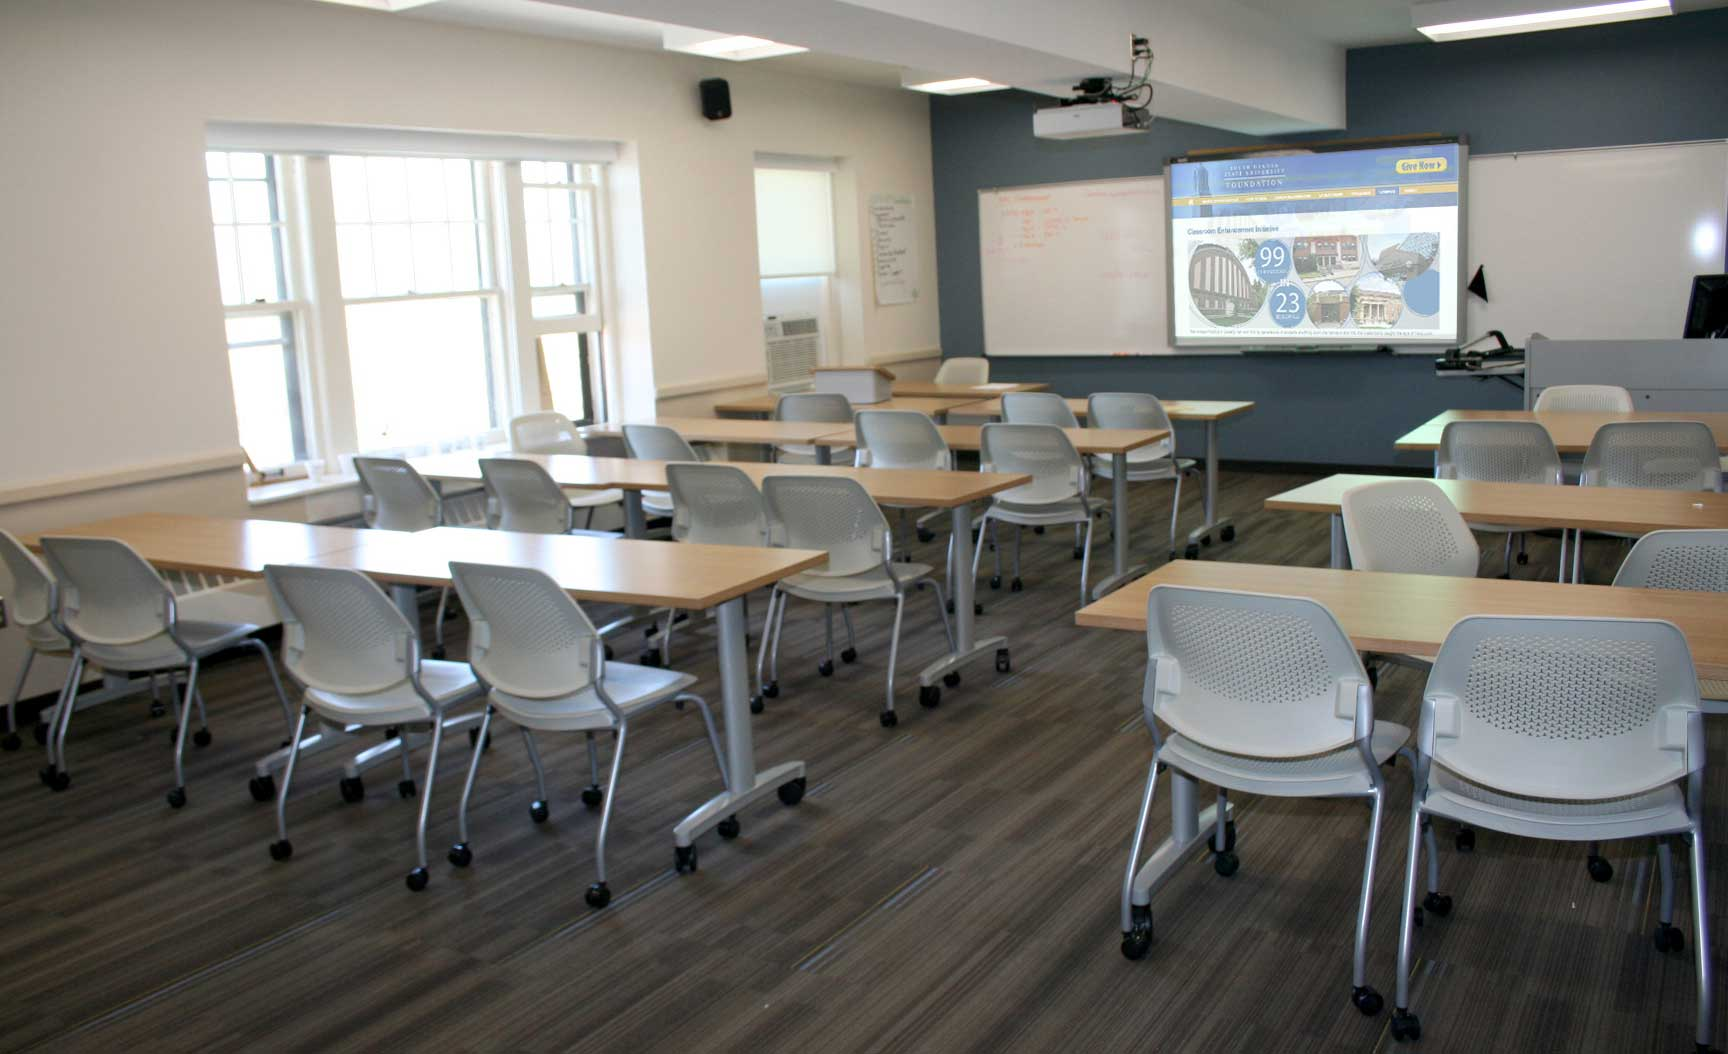 Classroom Enhancement Initiative will see extensive